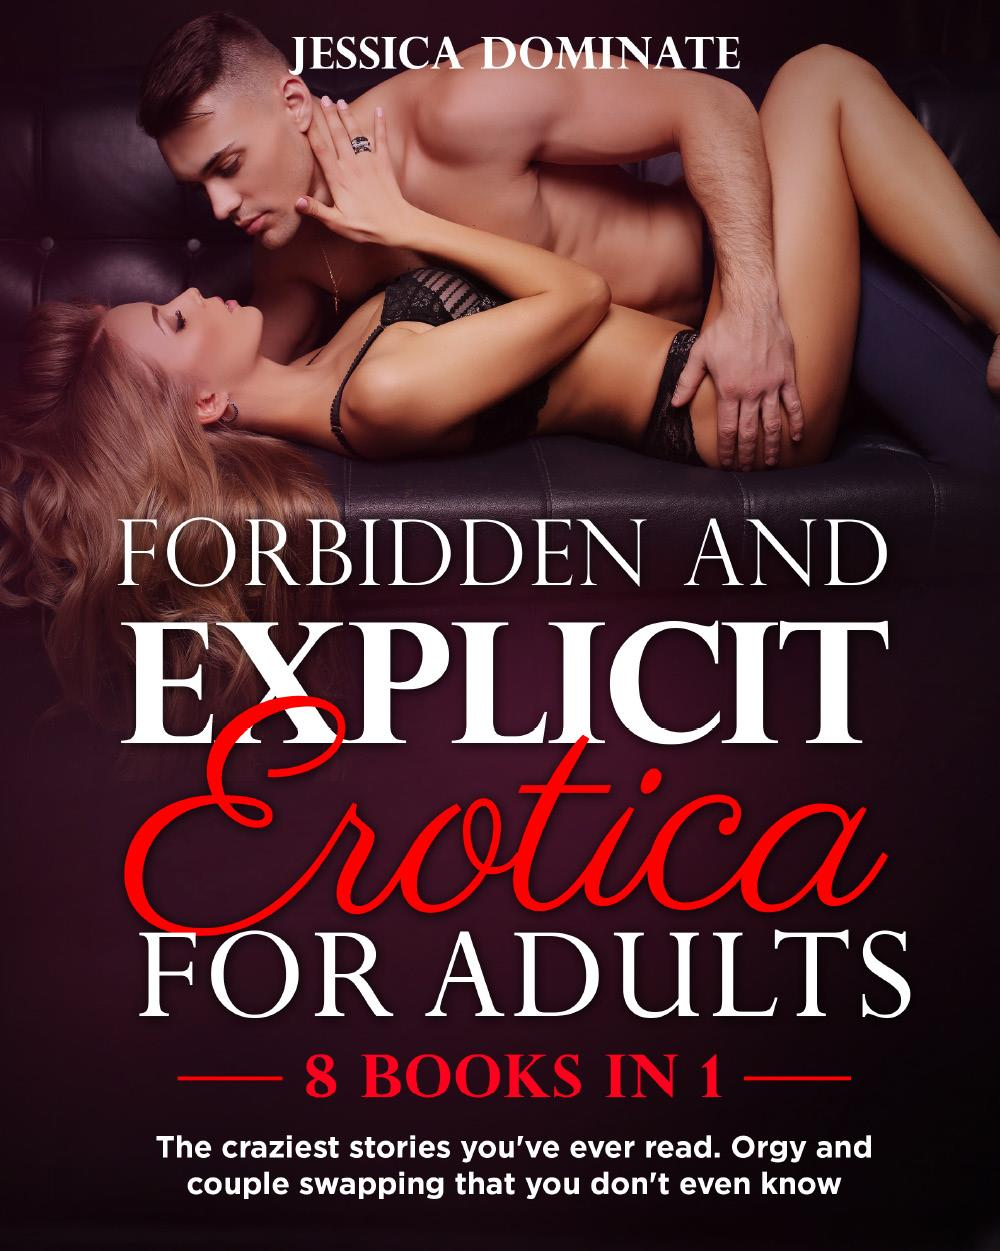 Forbidden and Explicit Erotica for Adults (8 Books in 1)